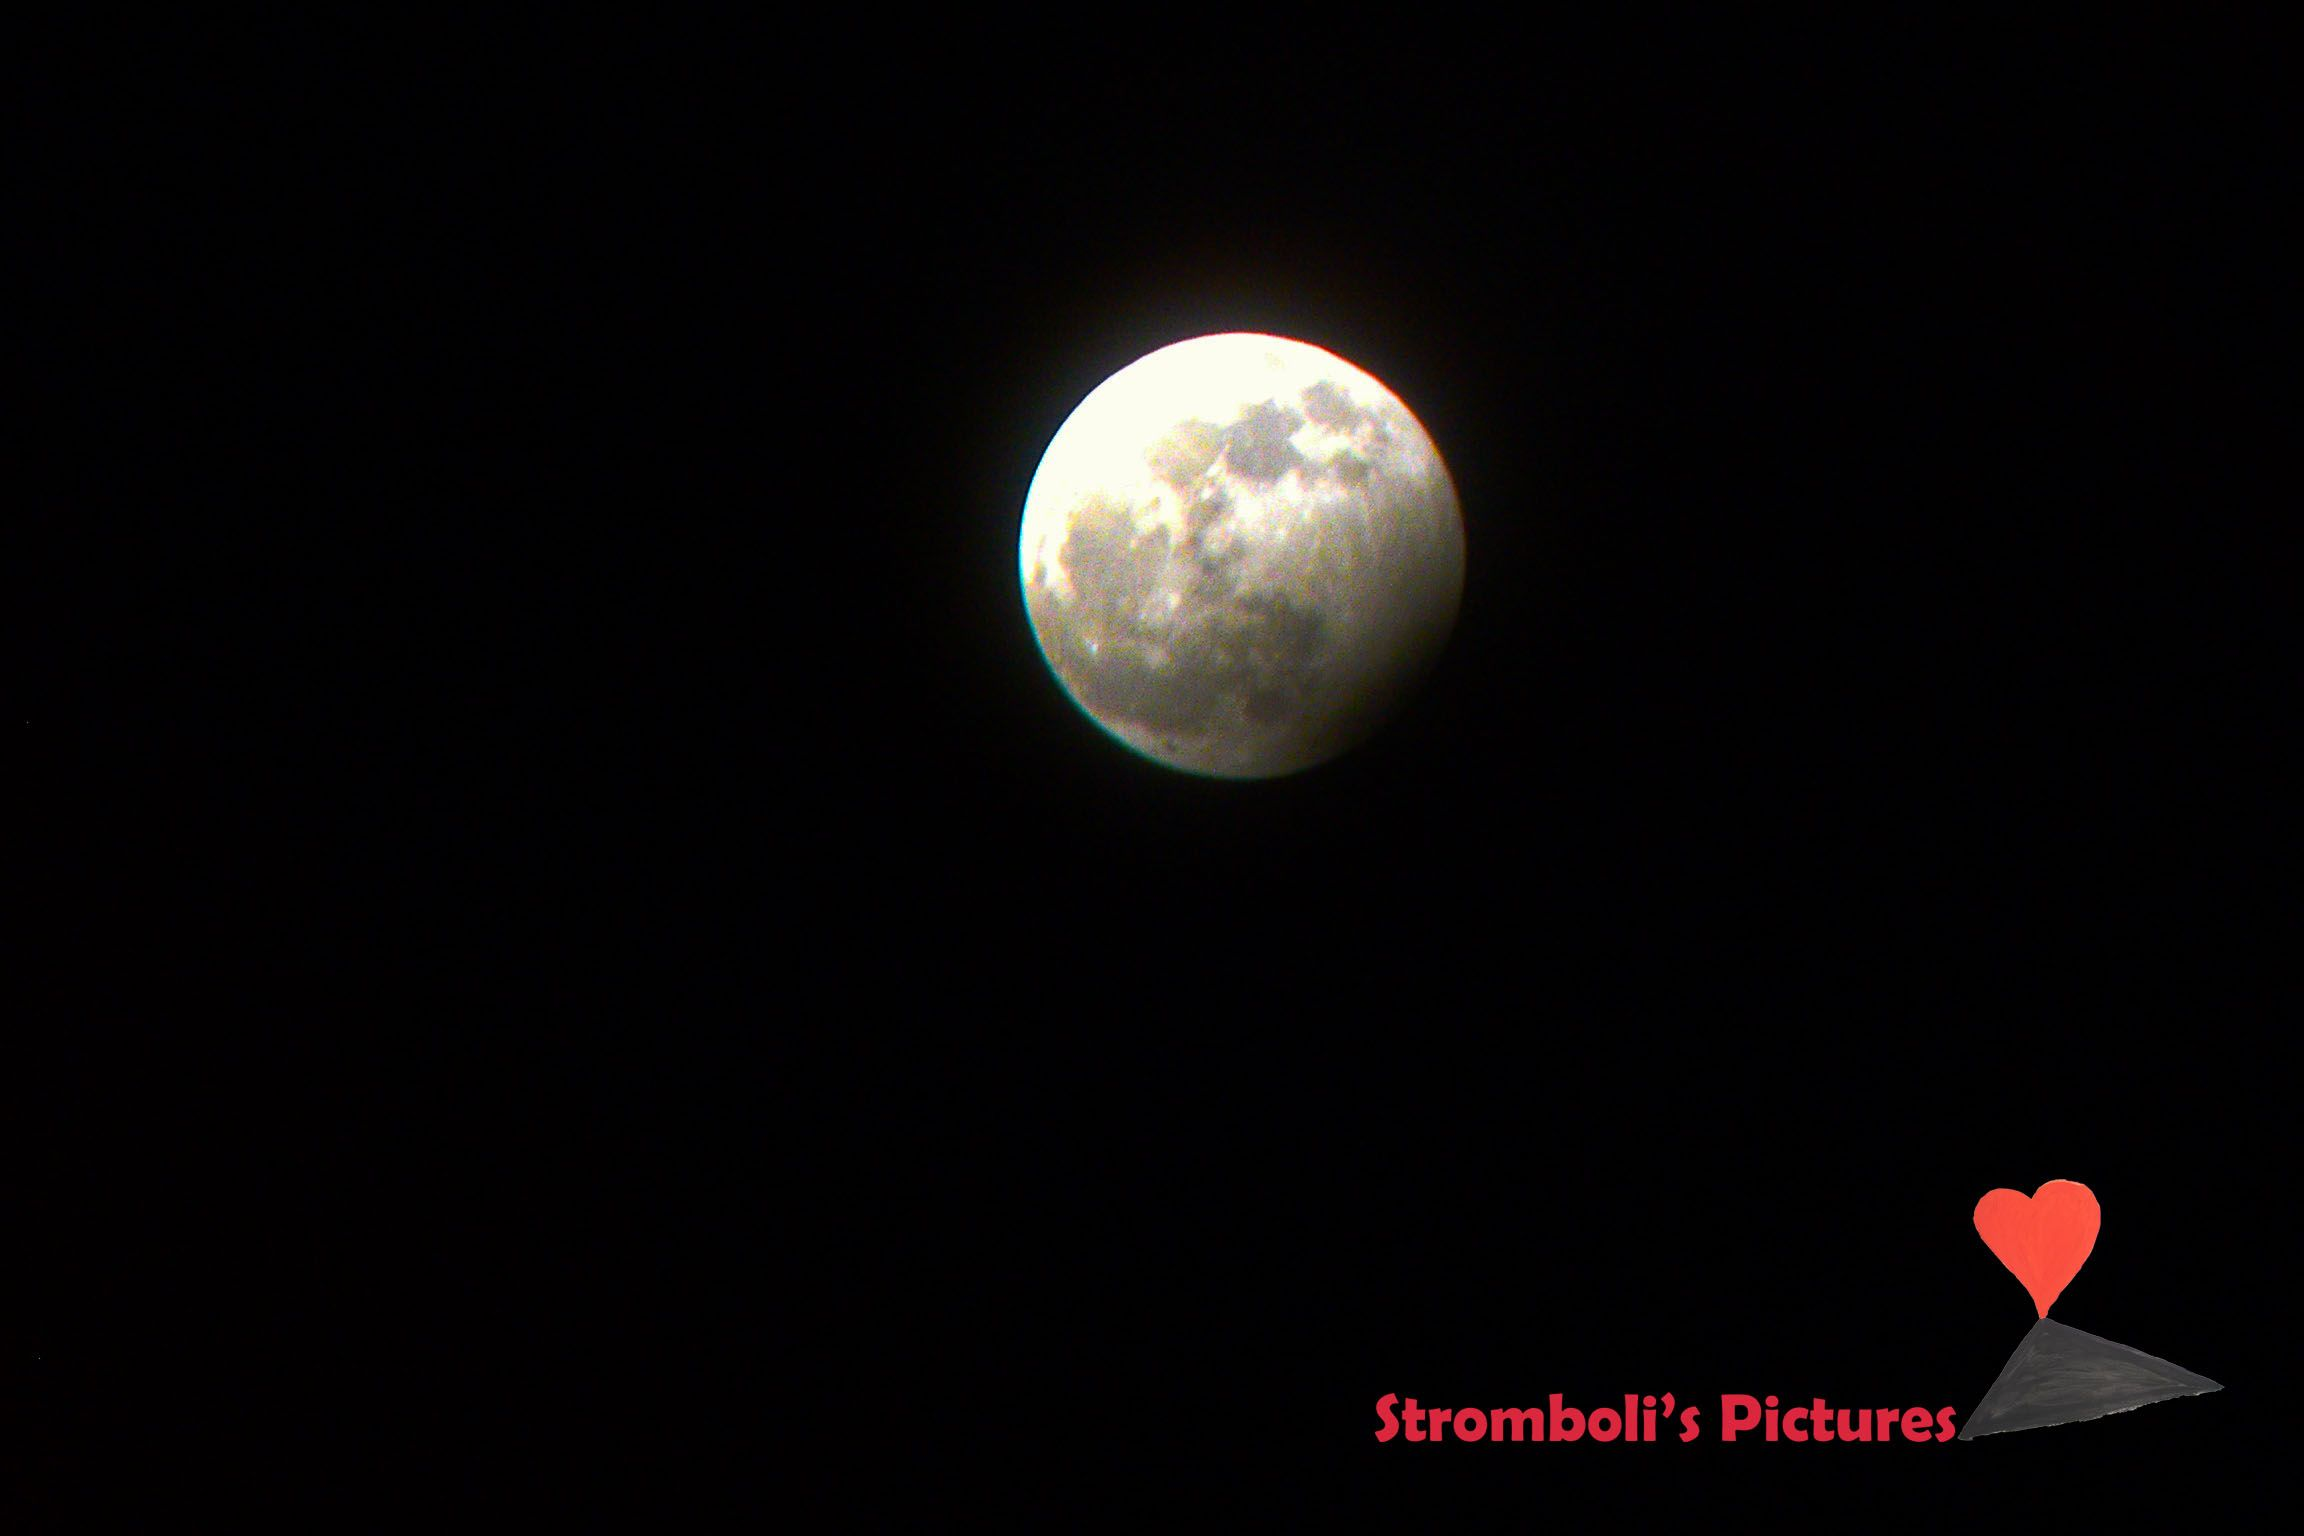 #Eclipse of Moon seen from #Stromboli.